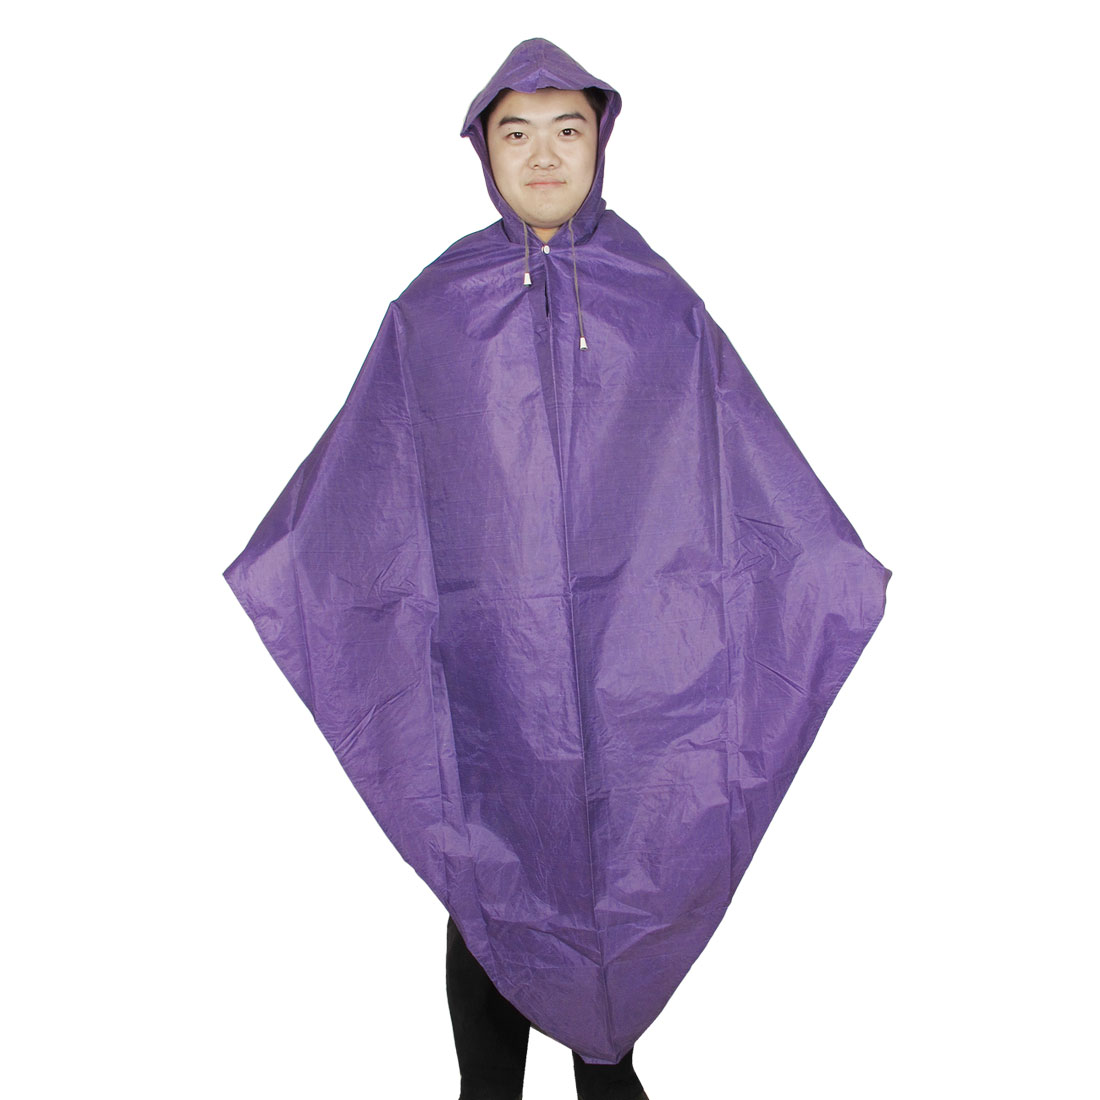 Drawstring Closed Outdoors Hiking Hooded Raincoat Rainwear Purple